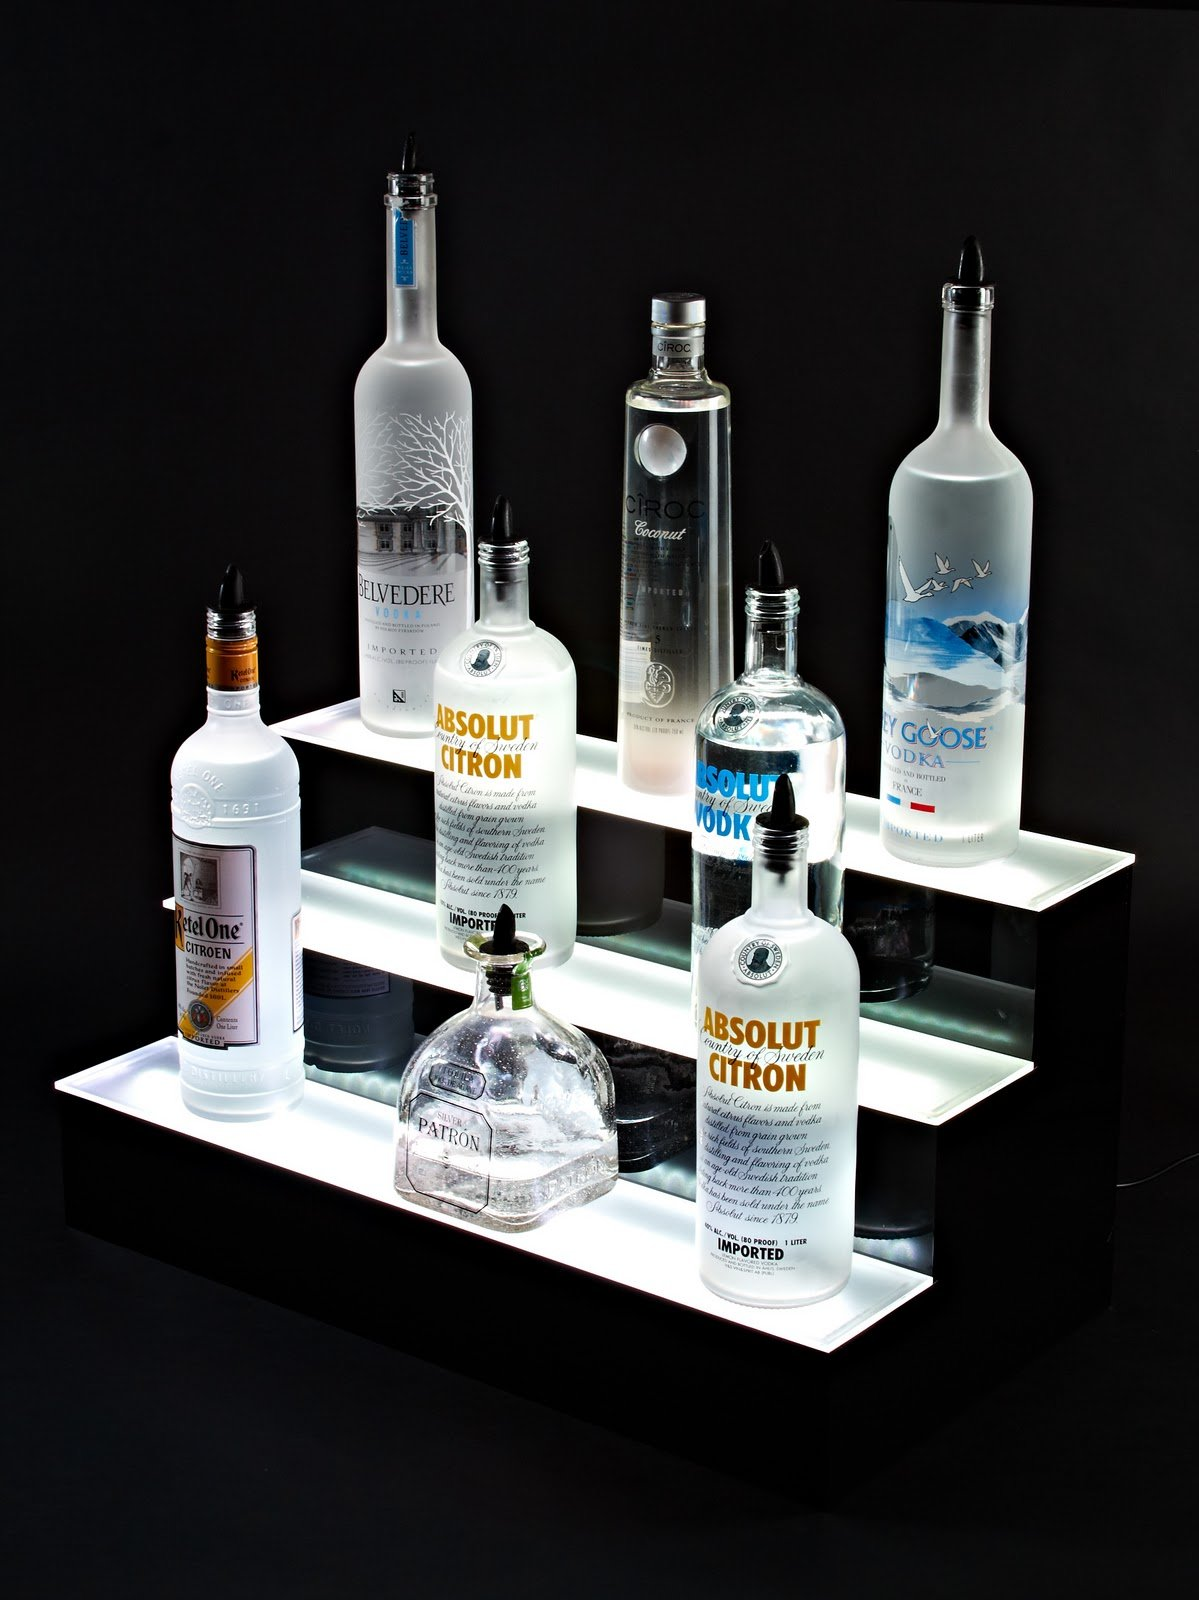 24'' inch 3 Tier Lighted Liquor Shelves Bottle Display LED |Home bar Lights by Armana Productions (Image #4)